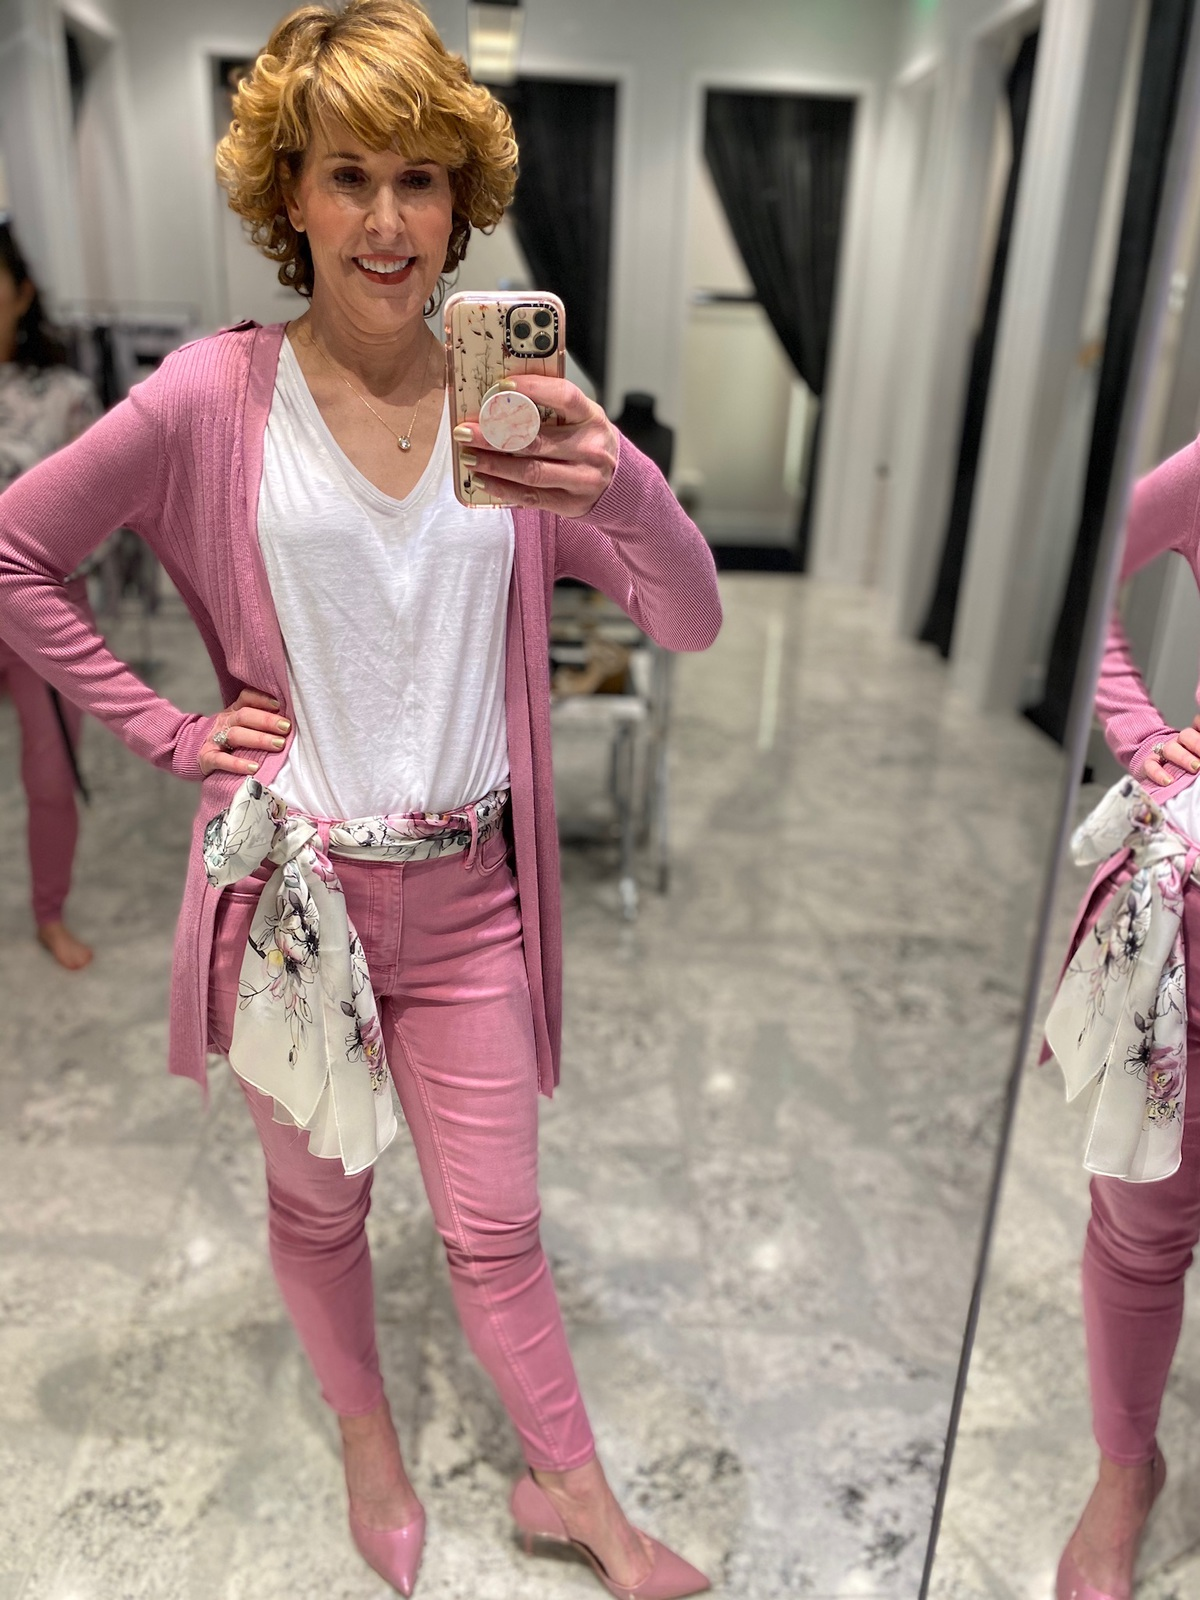 Mirror selfie of woman over 50 wearing pink jeans white v-neck tee pink long cardigan pink pumps